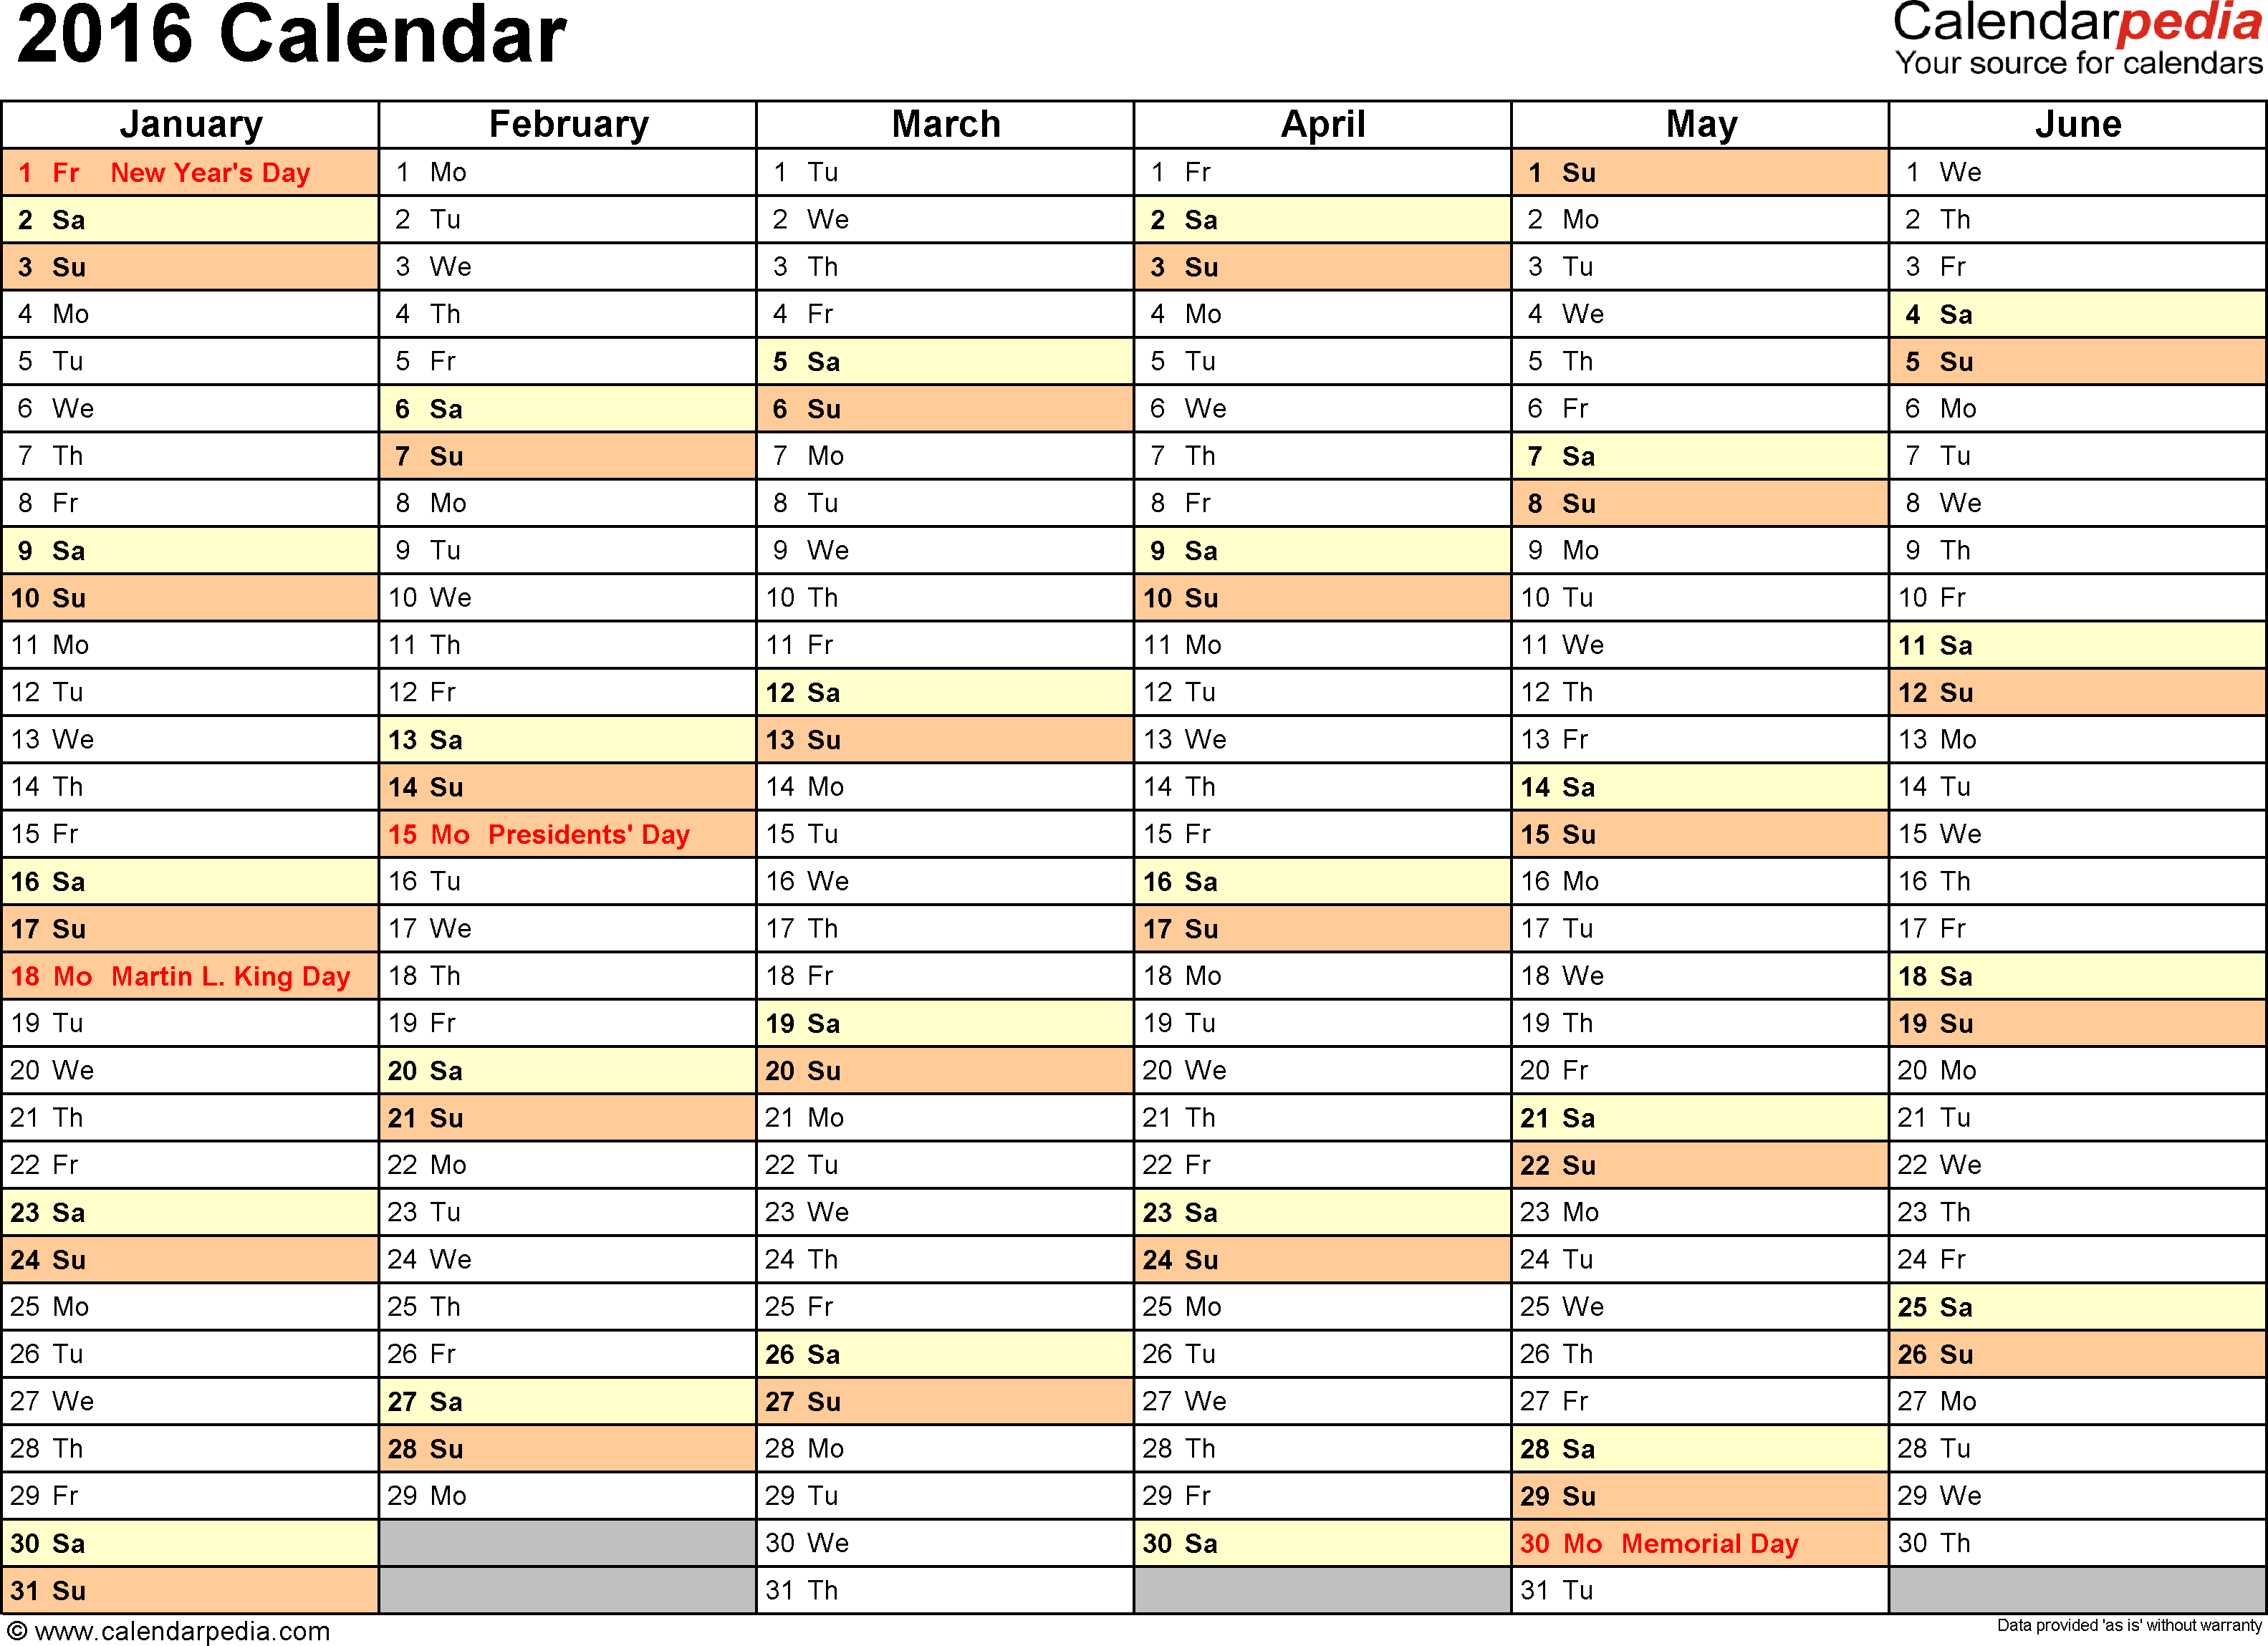 Ediblewildsus  Marvellous  Calendar  Download  Free Printable Excel Templates Xls With Fair Template   Calendar For Excel Months Horizontally  Pages Landscape Orientation With Appealing Vba Excel Close Workbook Also What Is If Function In Excel In Addition Excel Macros Vba And Export Data From Excel To Word As Well As Two Factor Anova Excel Additionally Excel Physical Therapy Manhasset From Calendarpediacom With Ediblewildsus  Fair  Calendar  Download  Free Printable Excel Templates Xls With Appealing Template   Calendar For Excel Months Horizontally  Pages Landscape Orientation And Marvellous Vba Excel Close Workbook Also What Is If Function In Excel In Addition Excel Macros Vba From Calendarpediacom